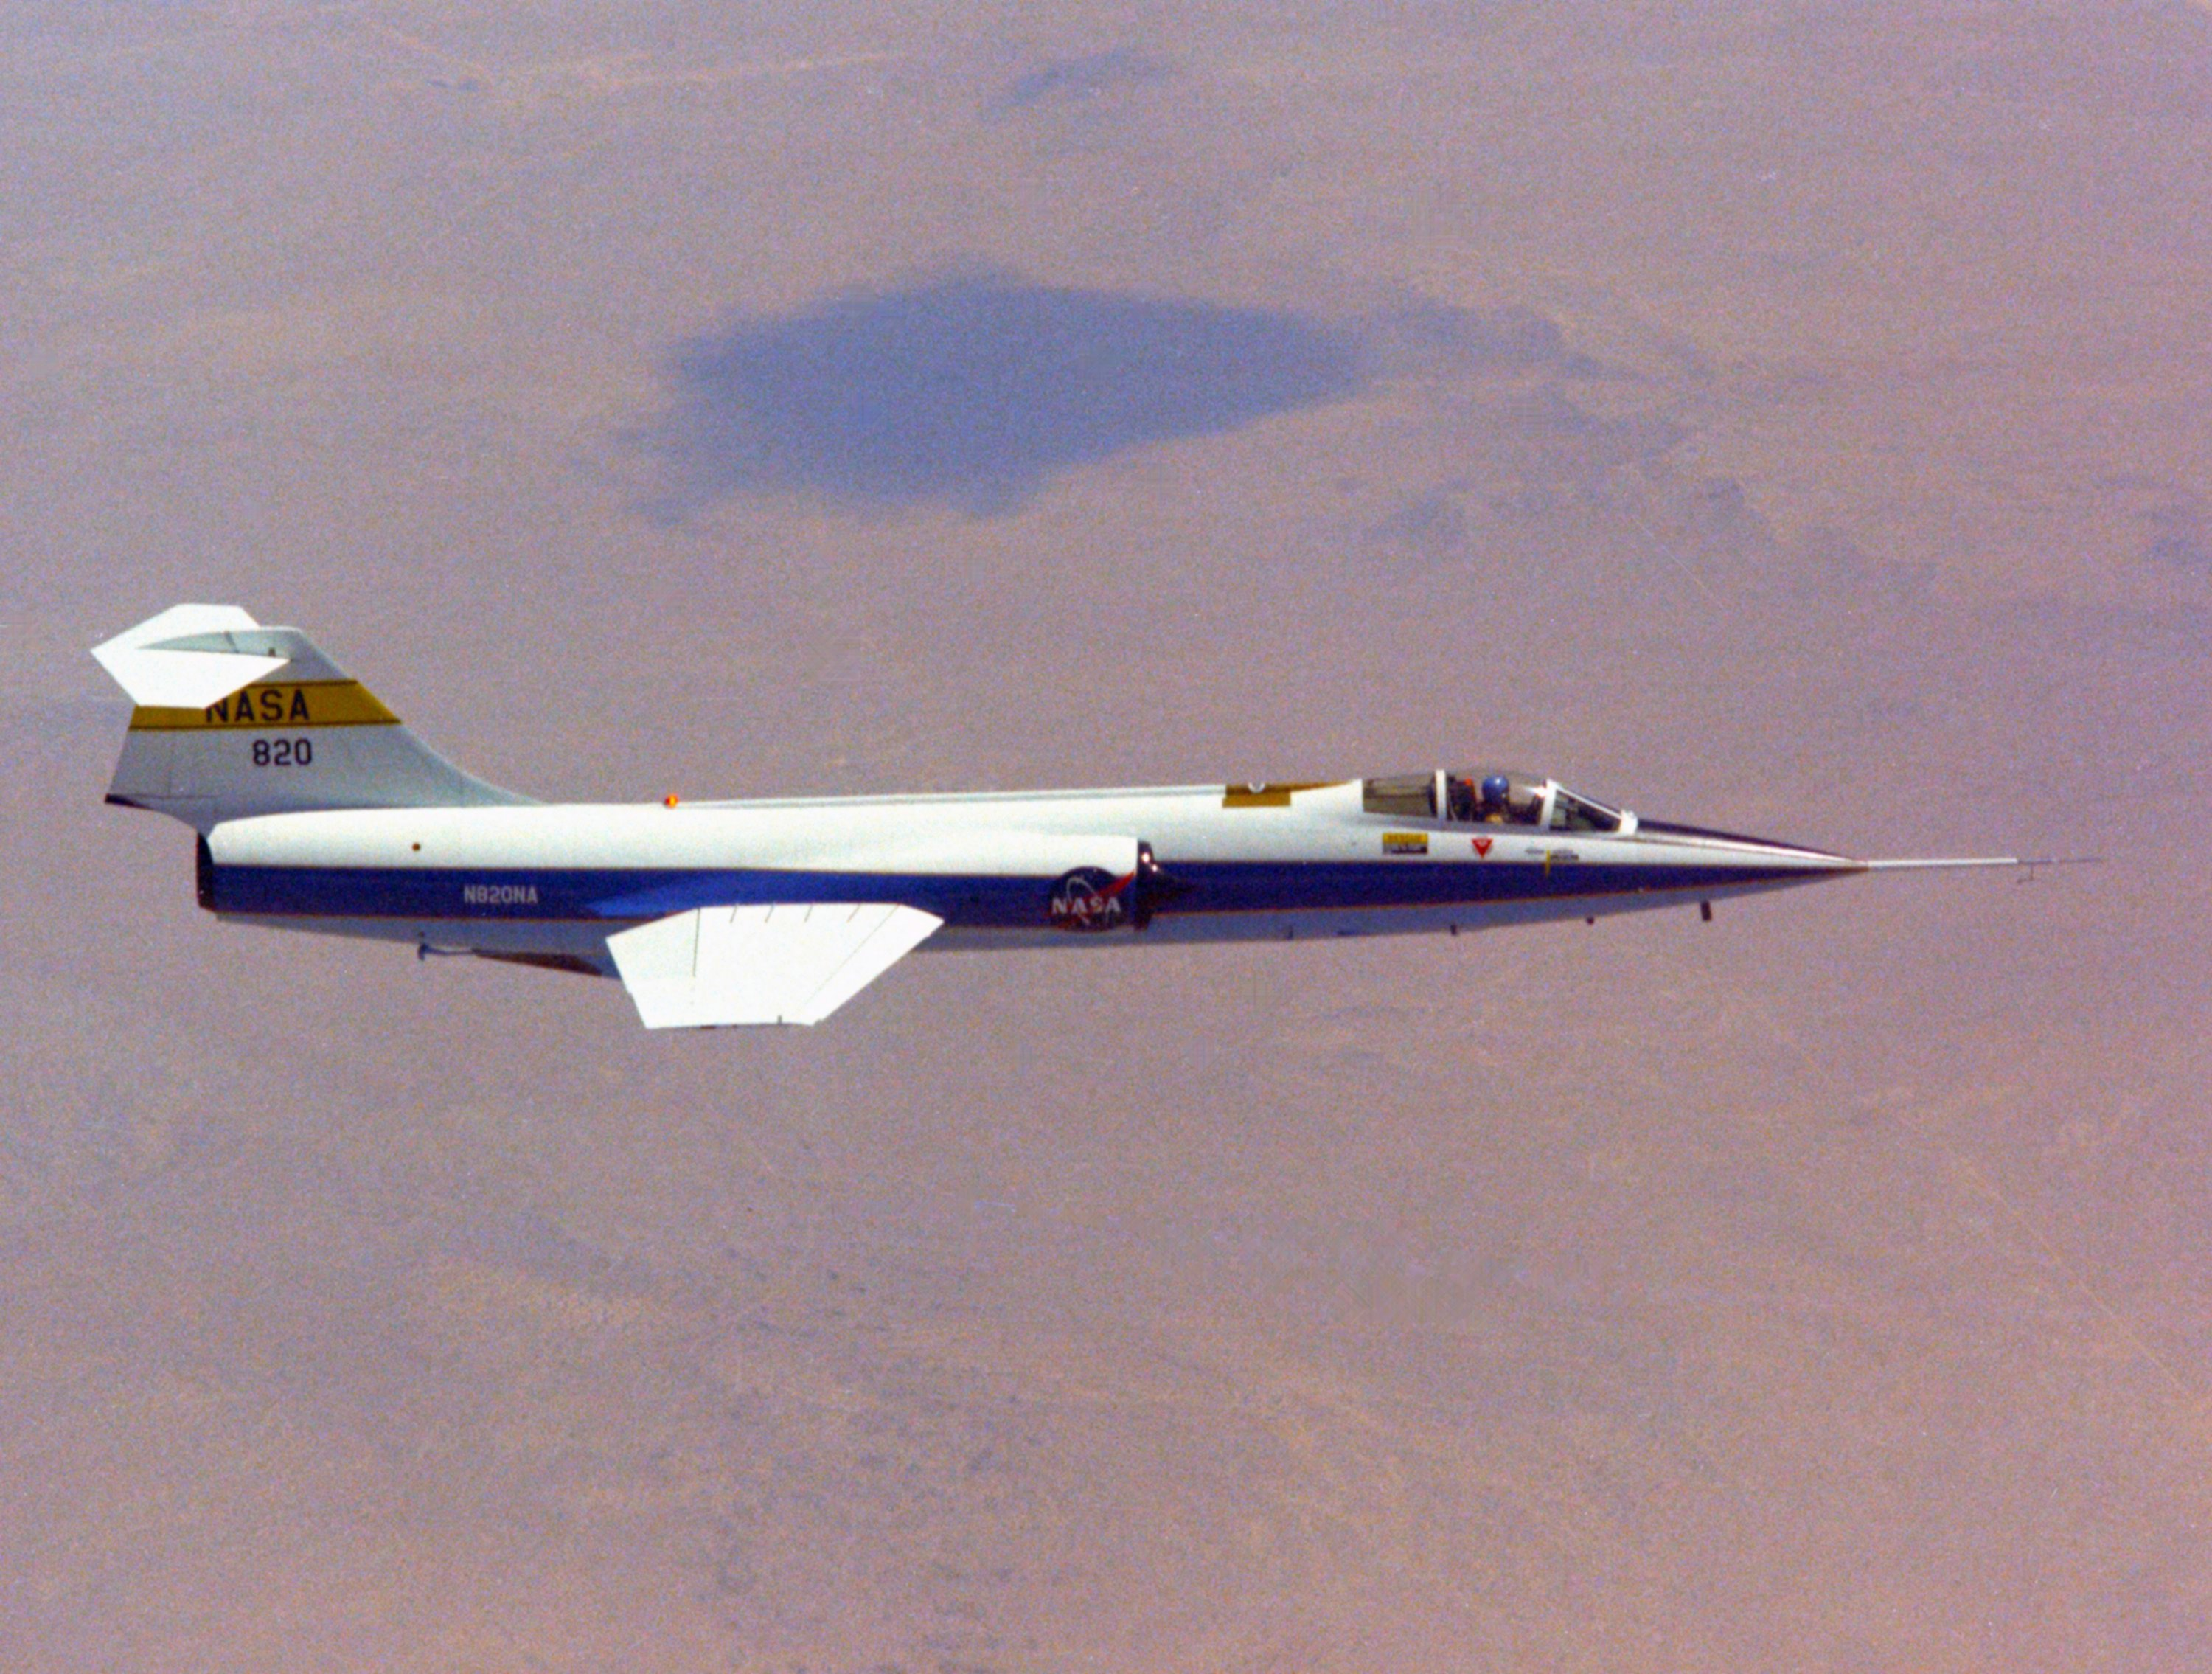 f 104 nasa dryden test fleet - photo #4